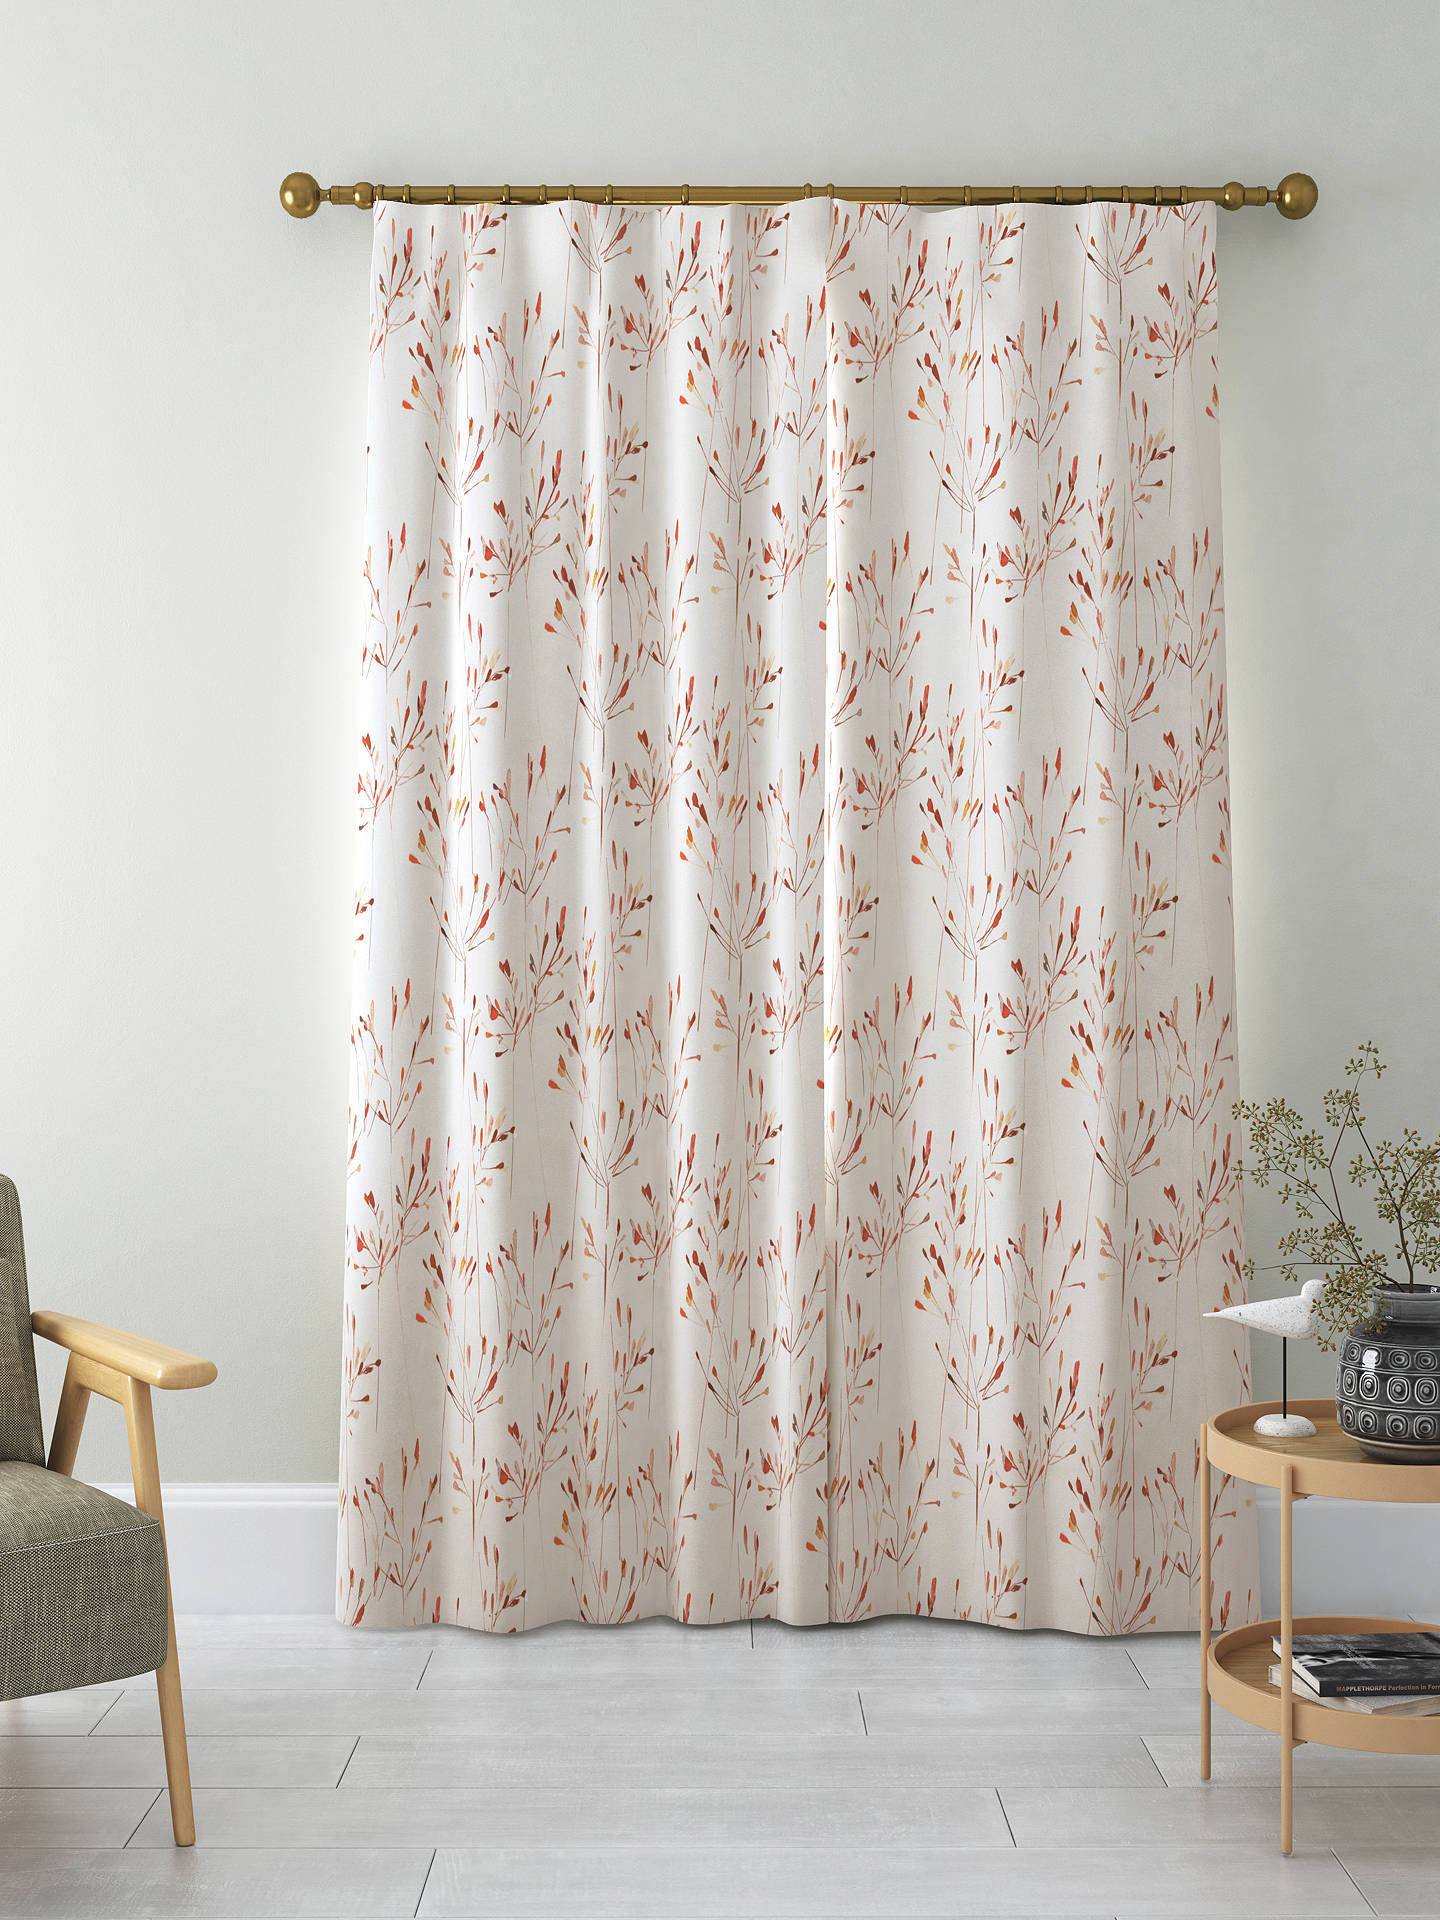 Buy John Lewis & Partners Nerine Pair Blackout Lined Pencil Pleat Curtains, Red, W167 x Drop 137cm Online at johnlewis.com